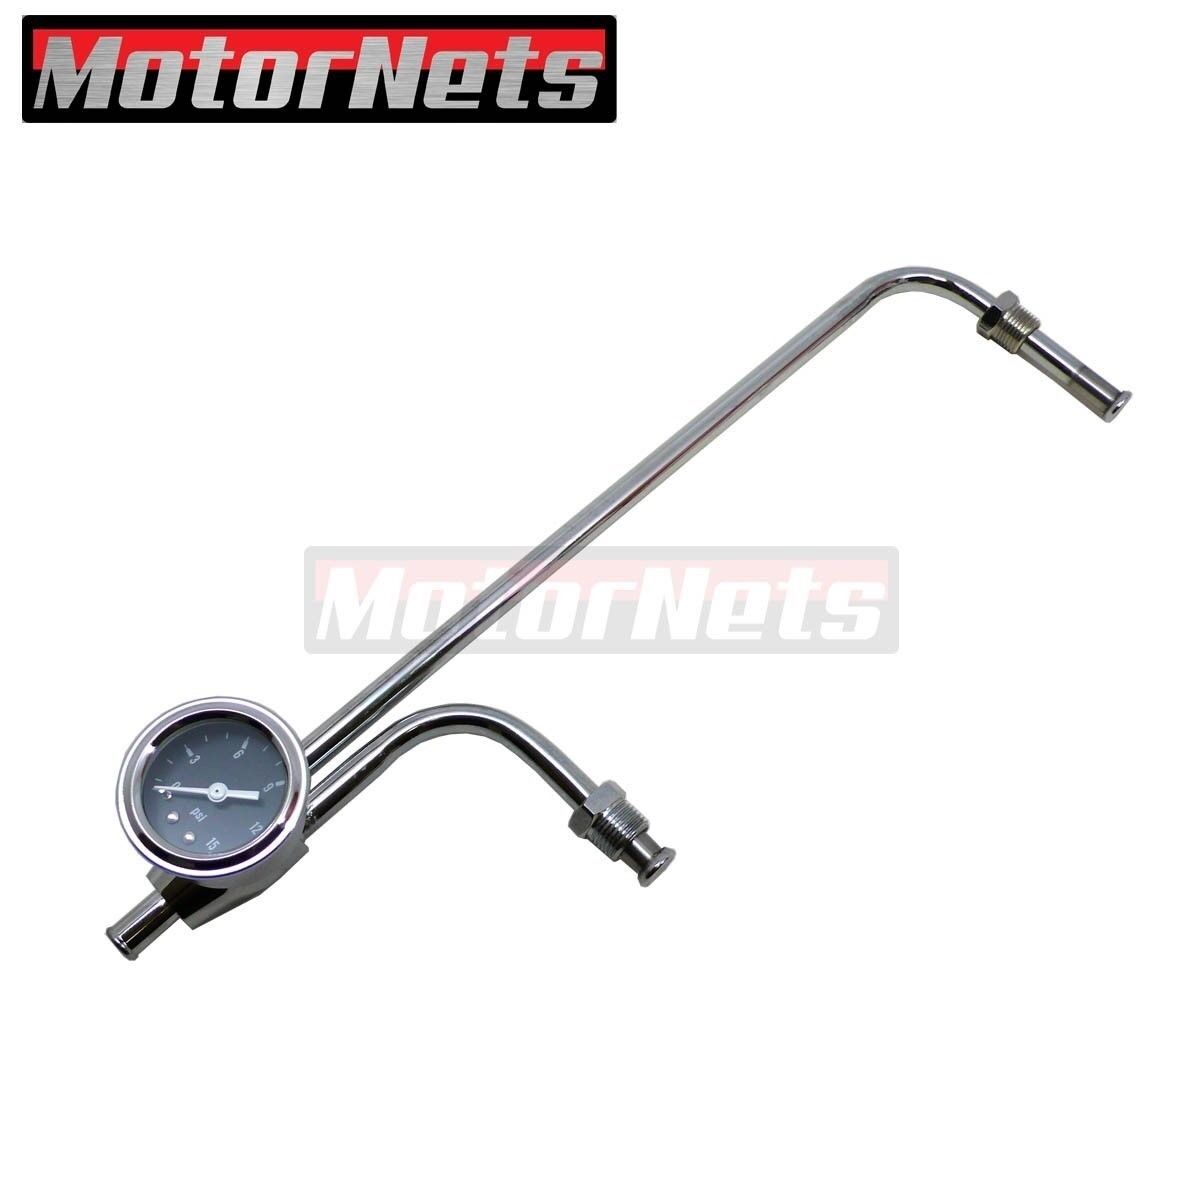 "8-21//32/"" Centres Chrome fuel line-Holley 3310-3//8/"" Tube"